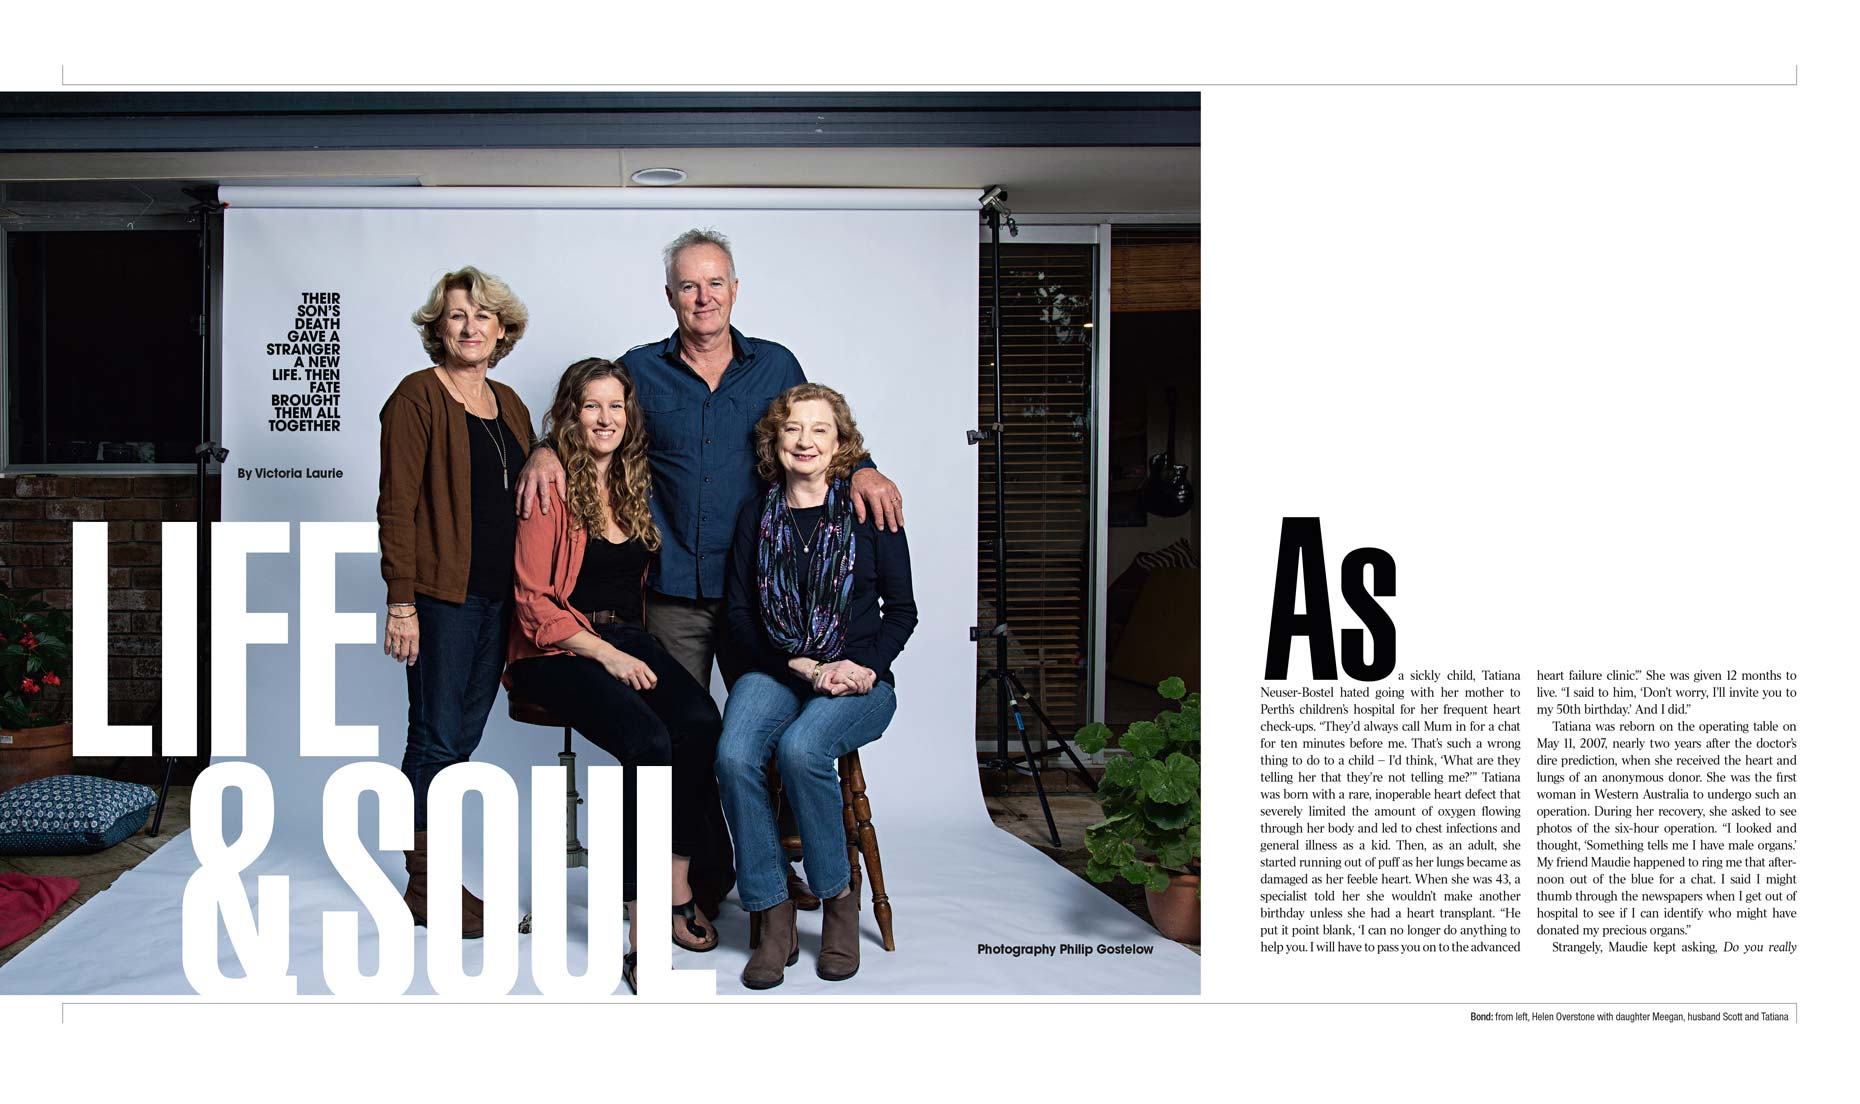 The Weekend Australian Magazine - cover story - The Gift - double page spread